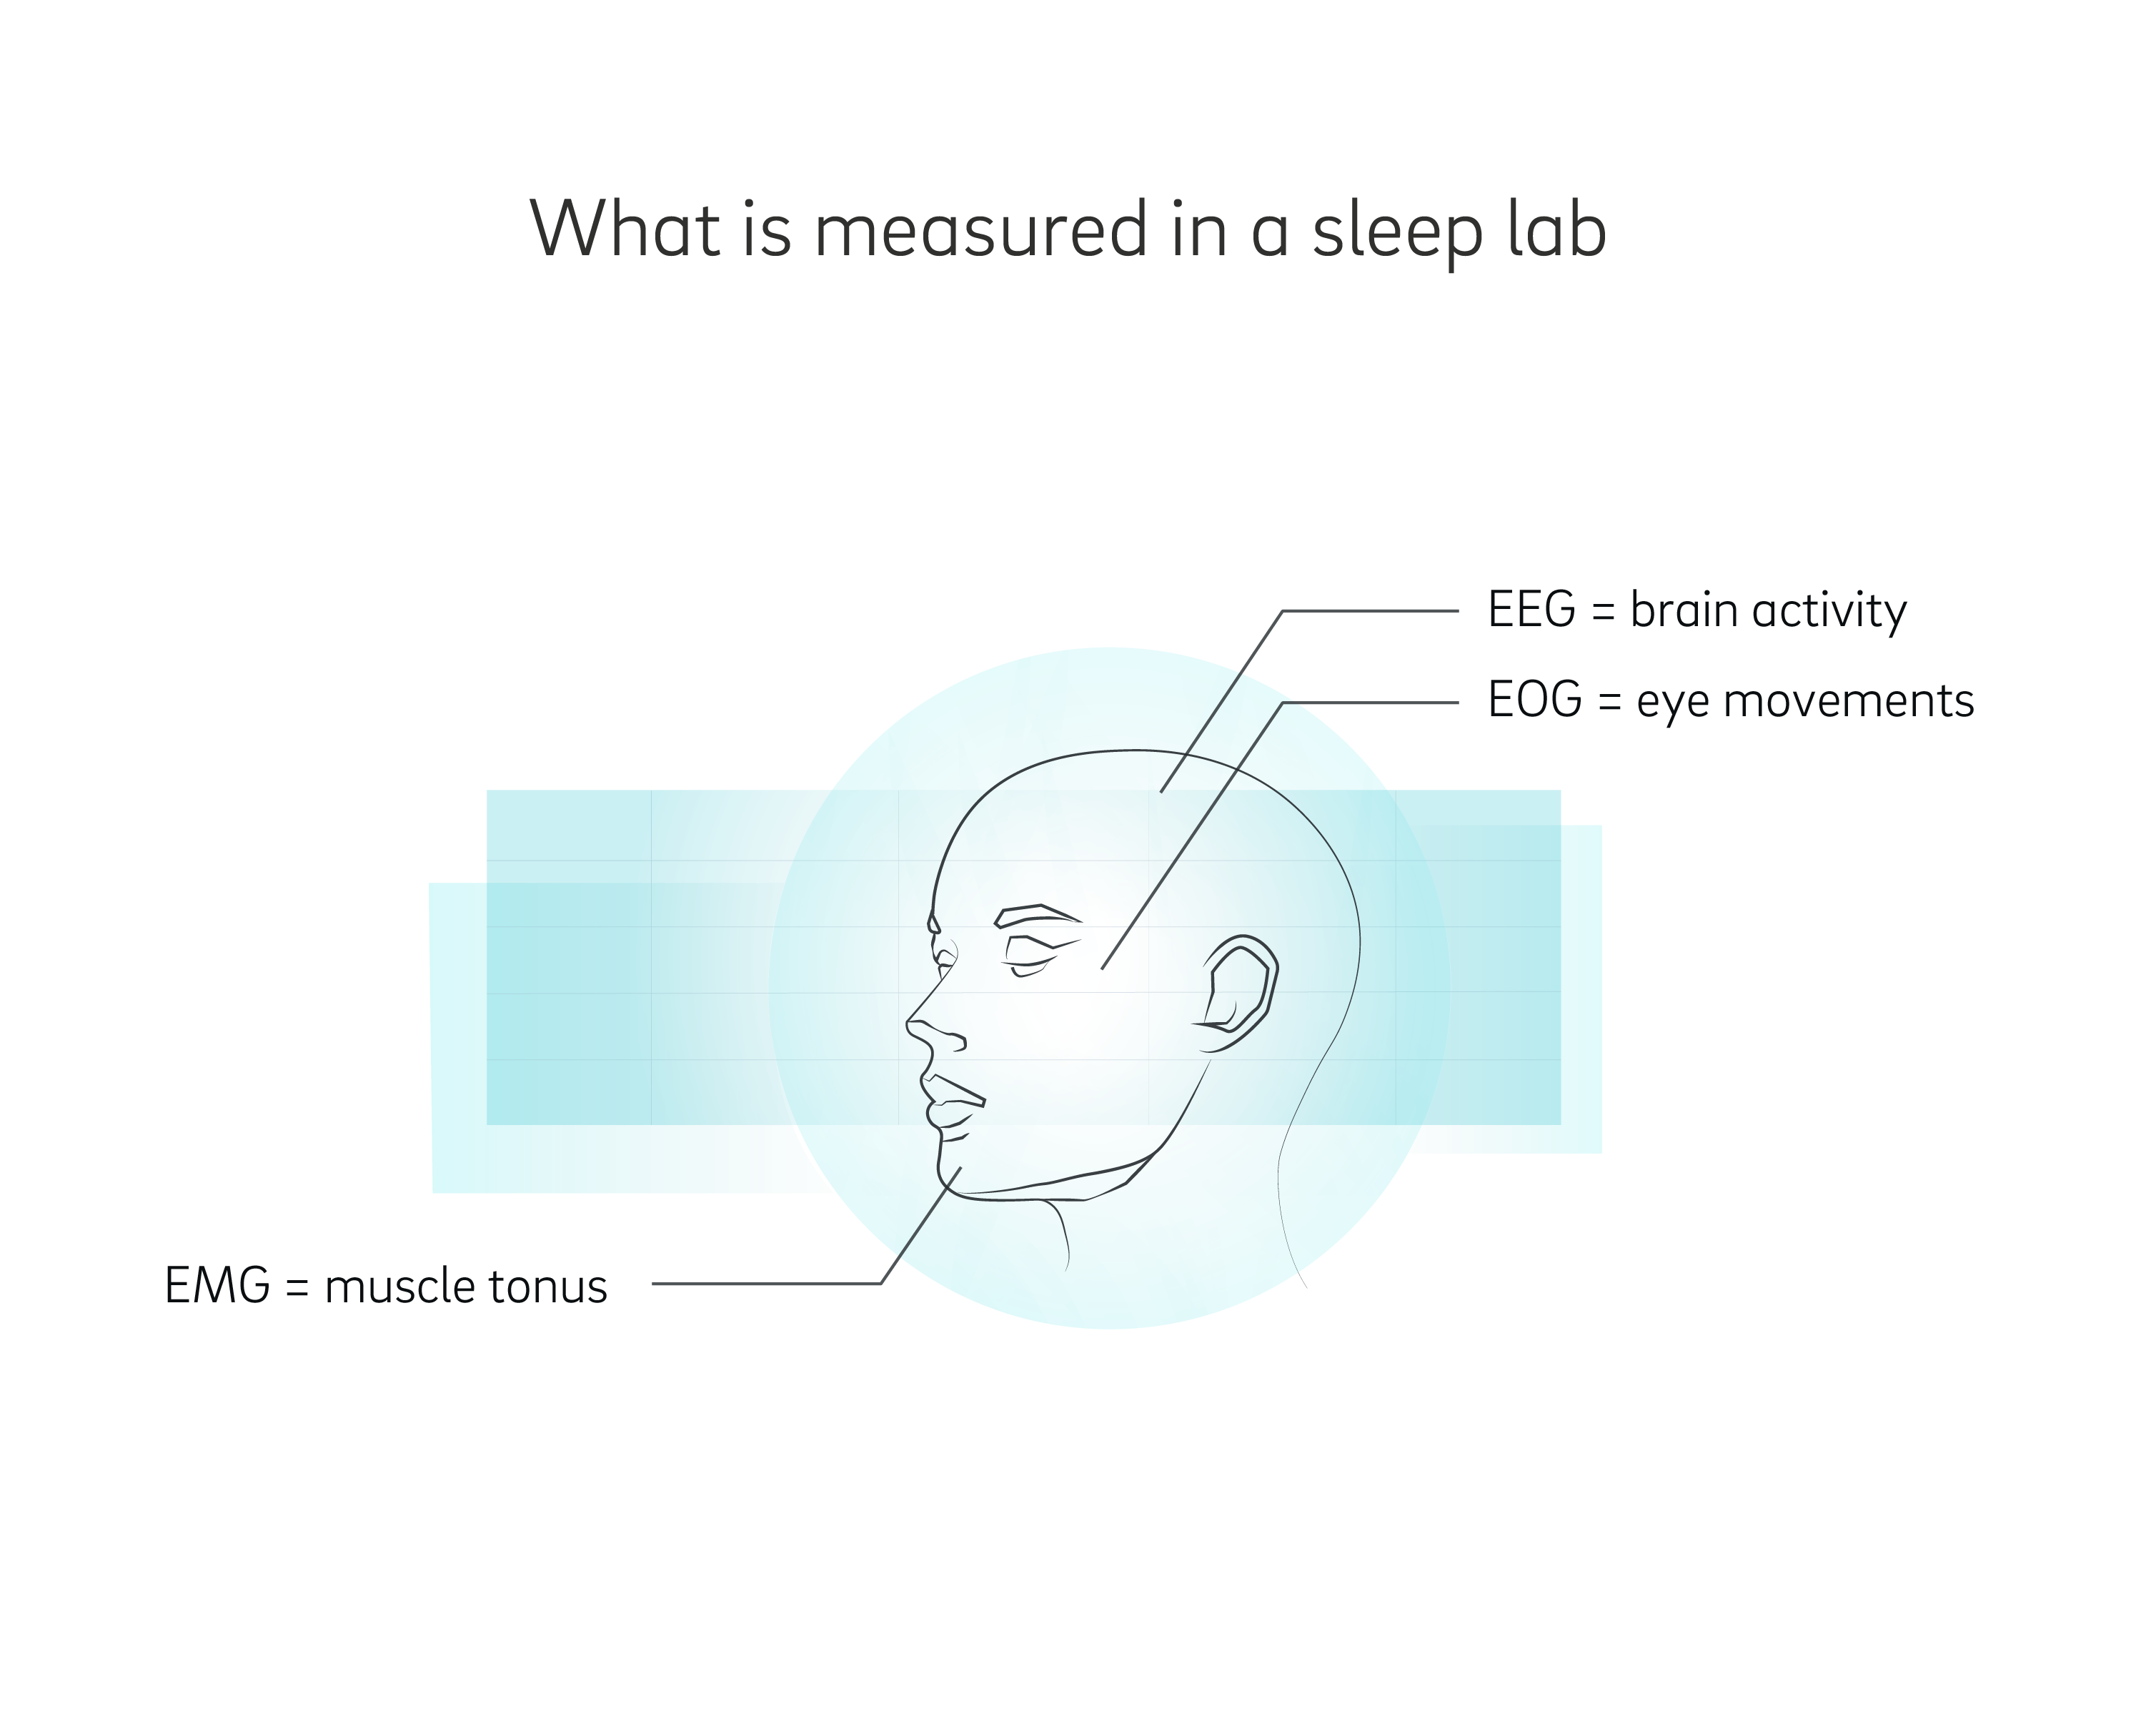 Measuring sleep stages in a sleep lab